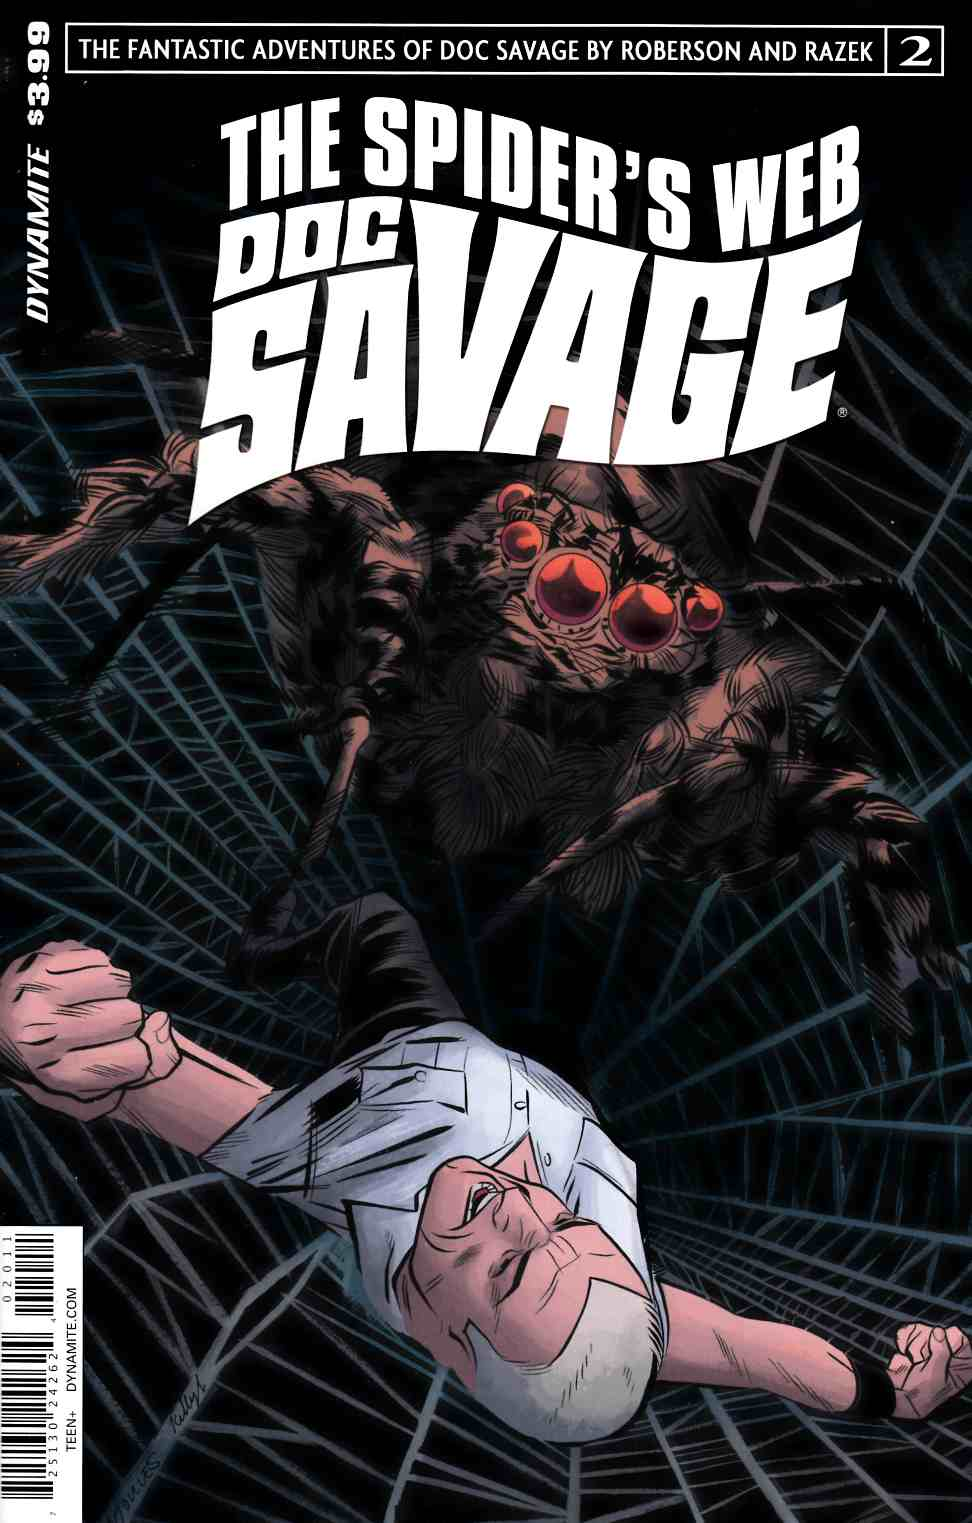 Doc Savage Spiders Web #2 Cover A- Torres [Dynamite Comic] THUMBNAIL